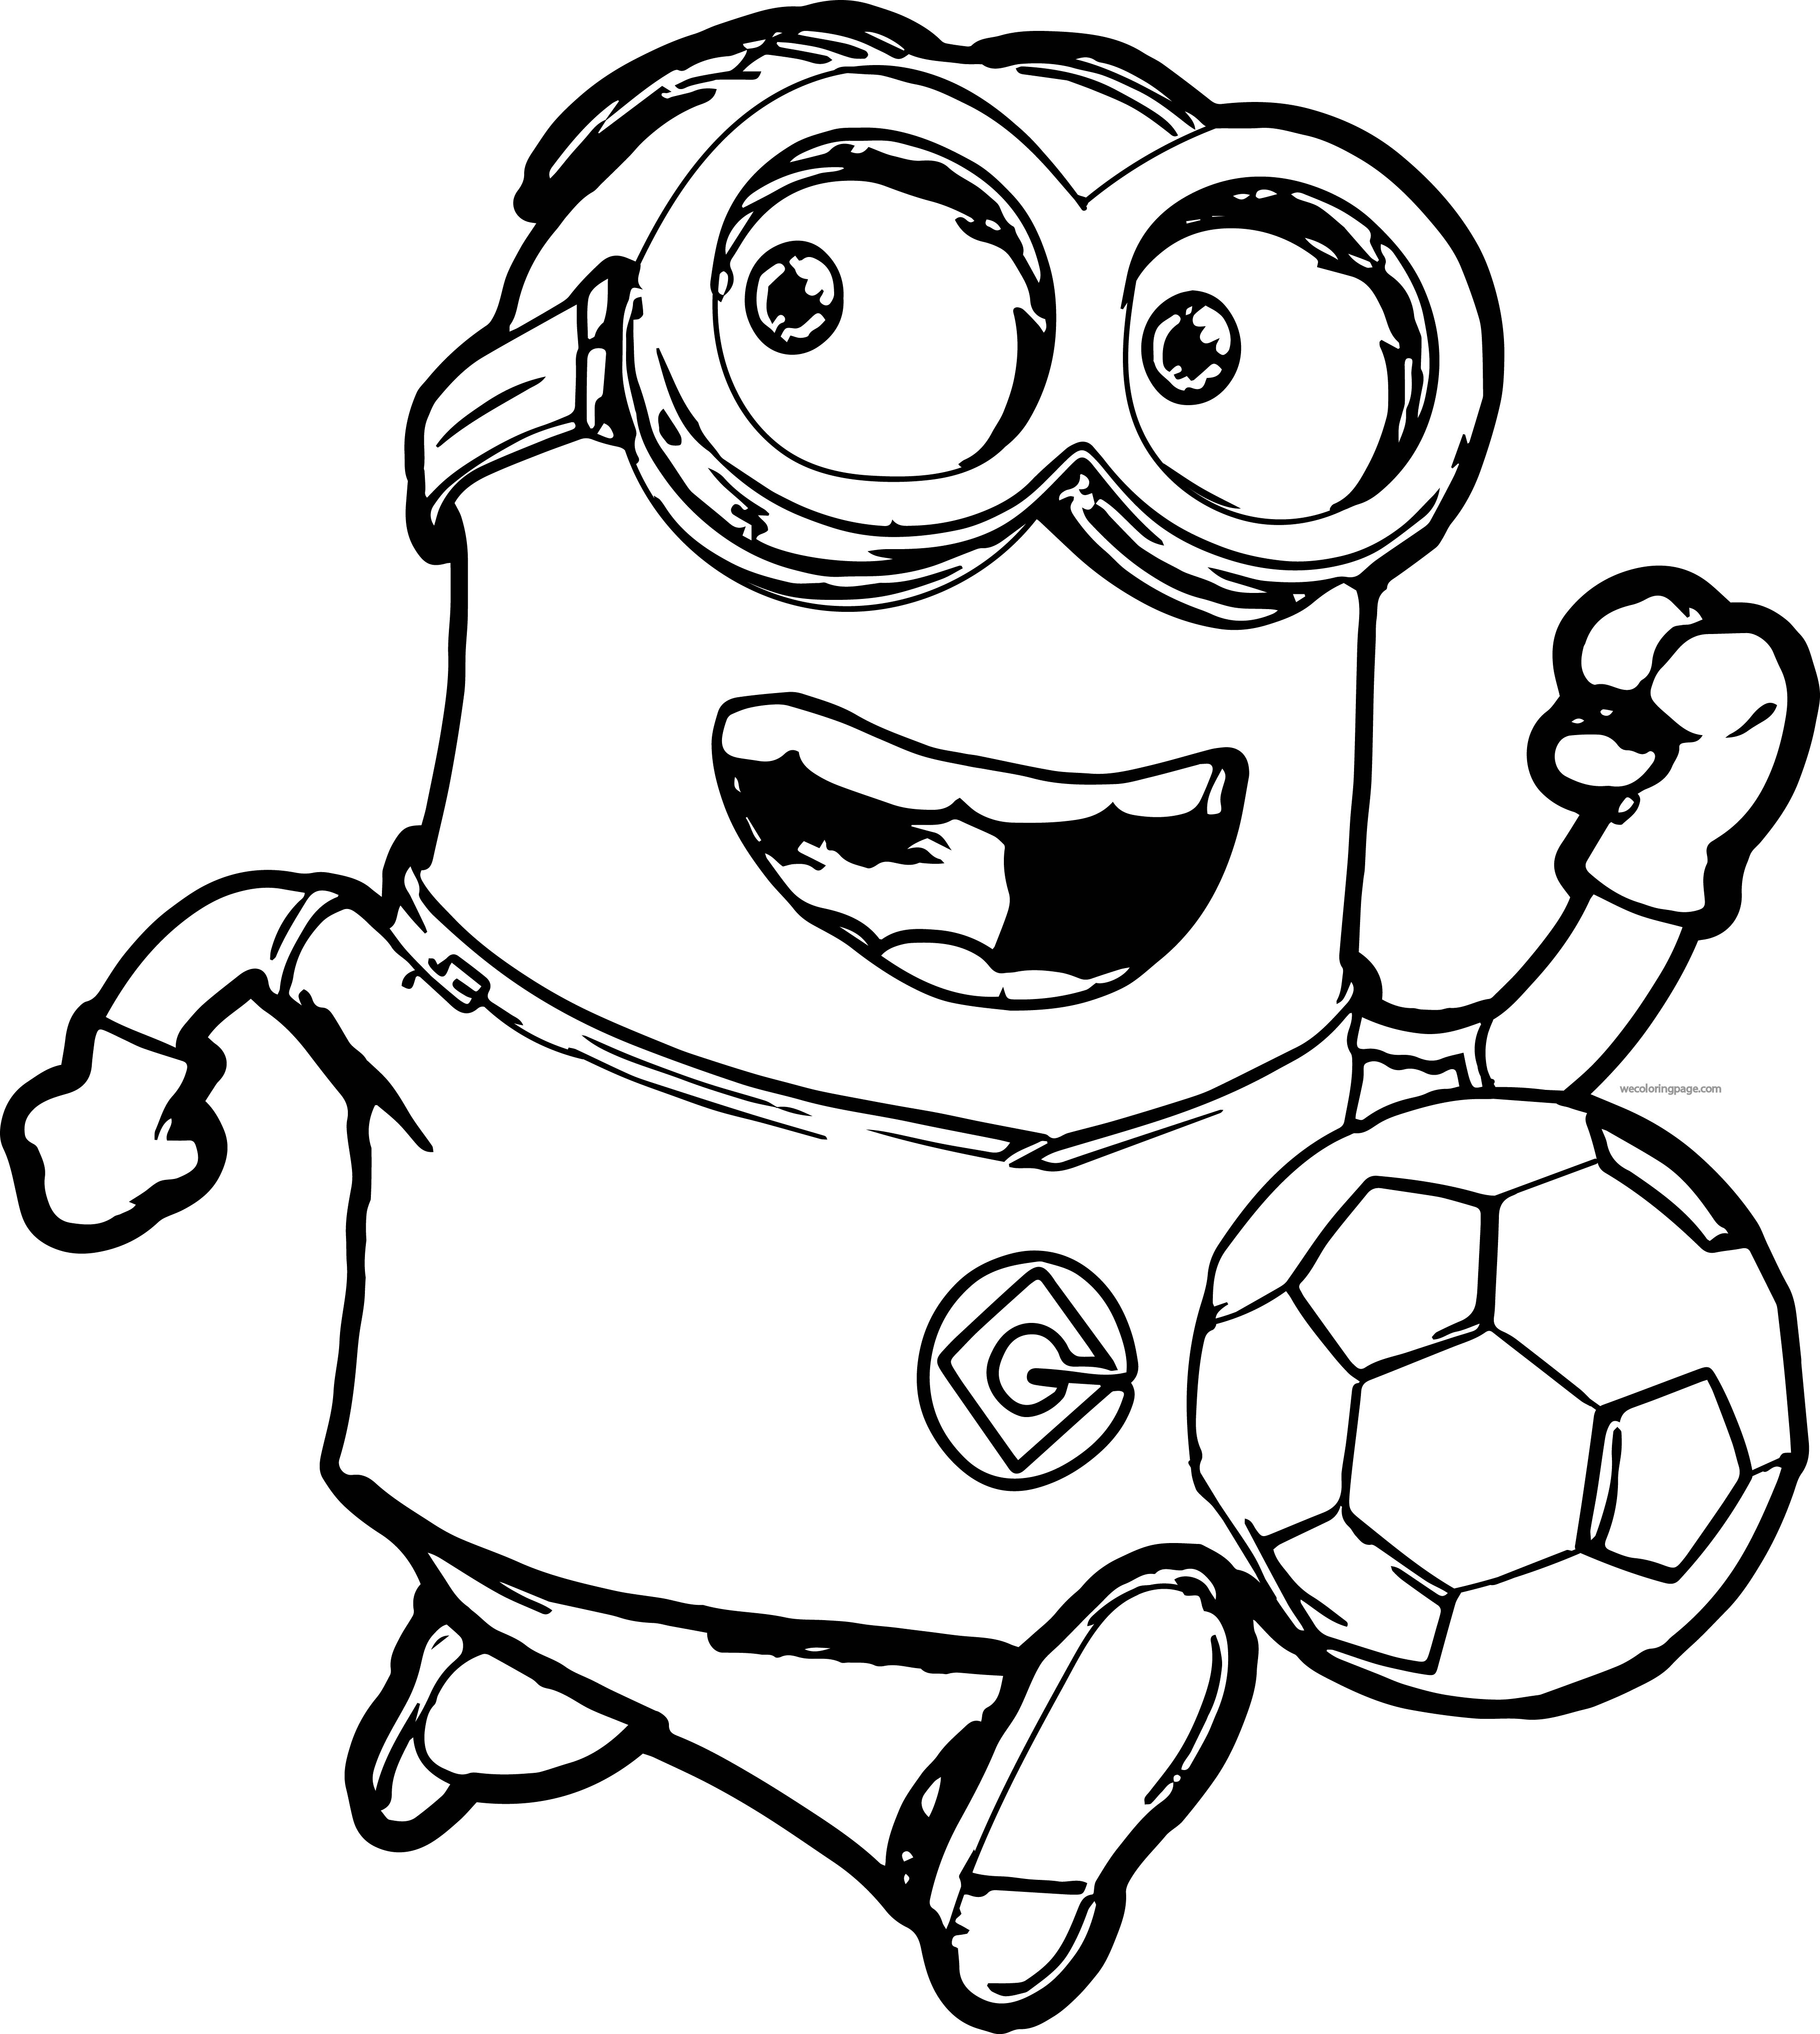 coloring minion minion coloring pages best coloring pages for kids minion coloring